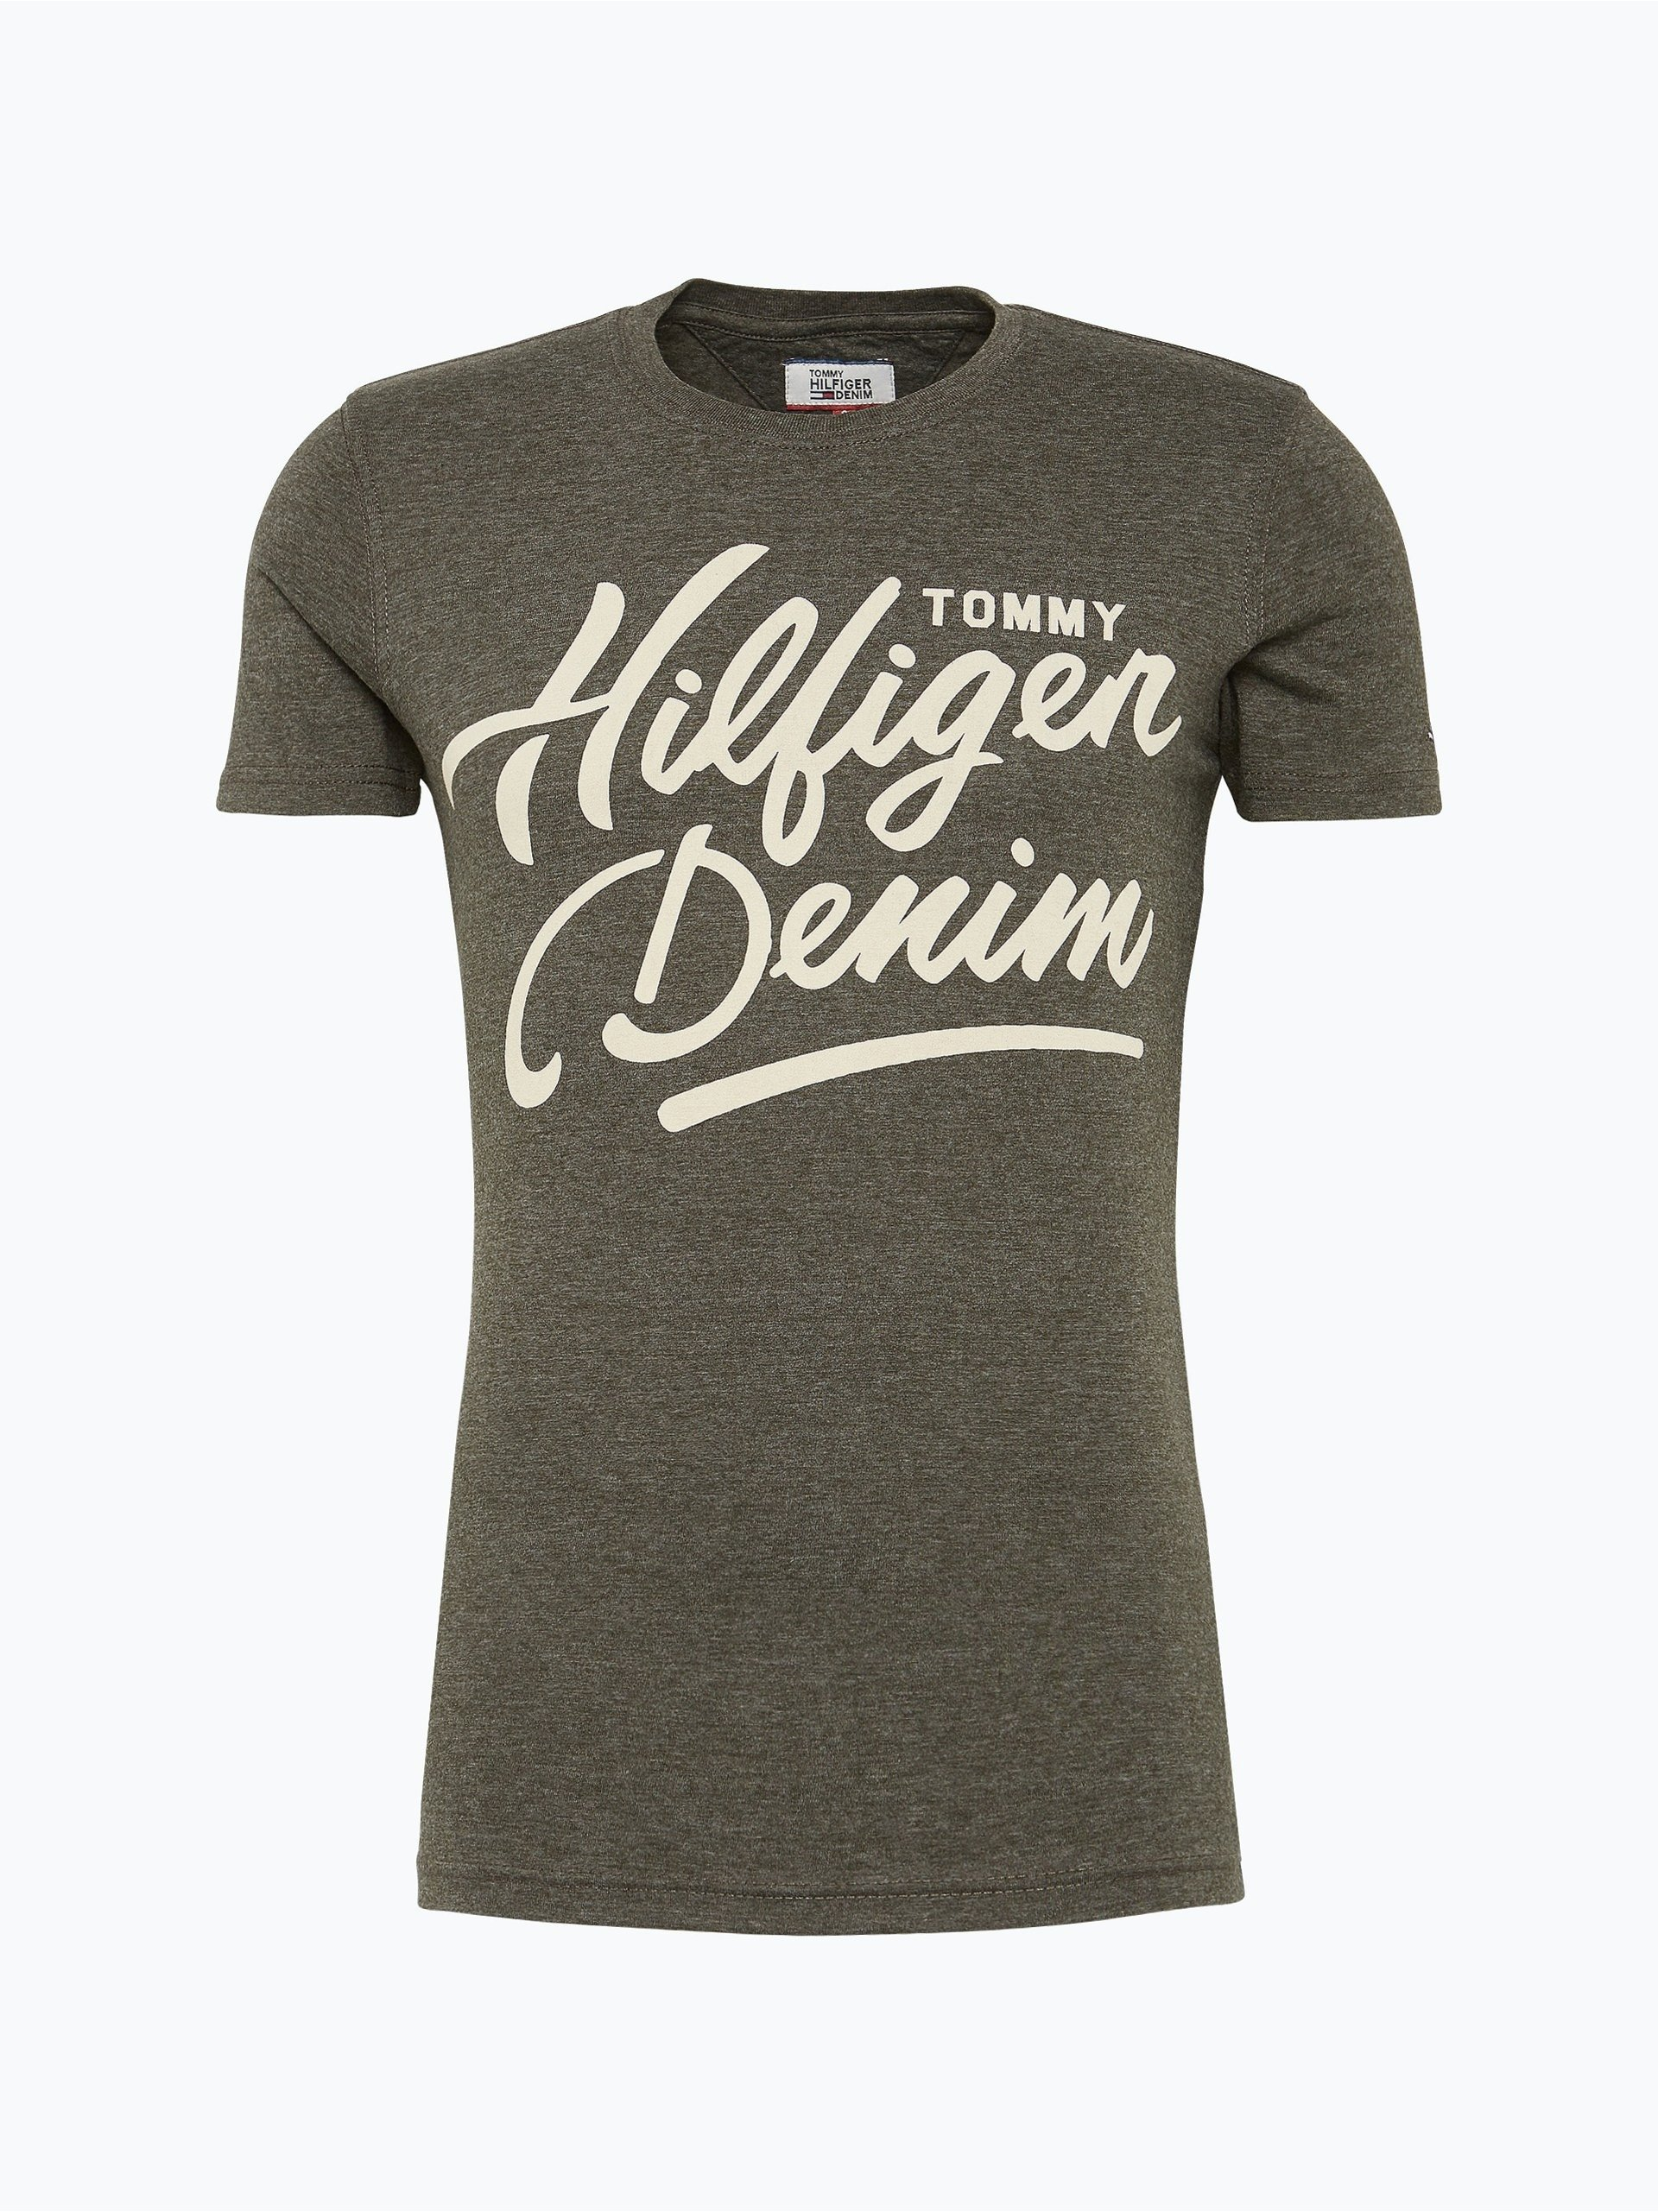 hilfiger denim herren t shirt oliv gemustert online kaufen. Black Bedroom Furniture Sets. Home Design Ideas